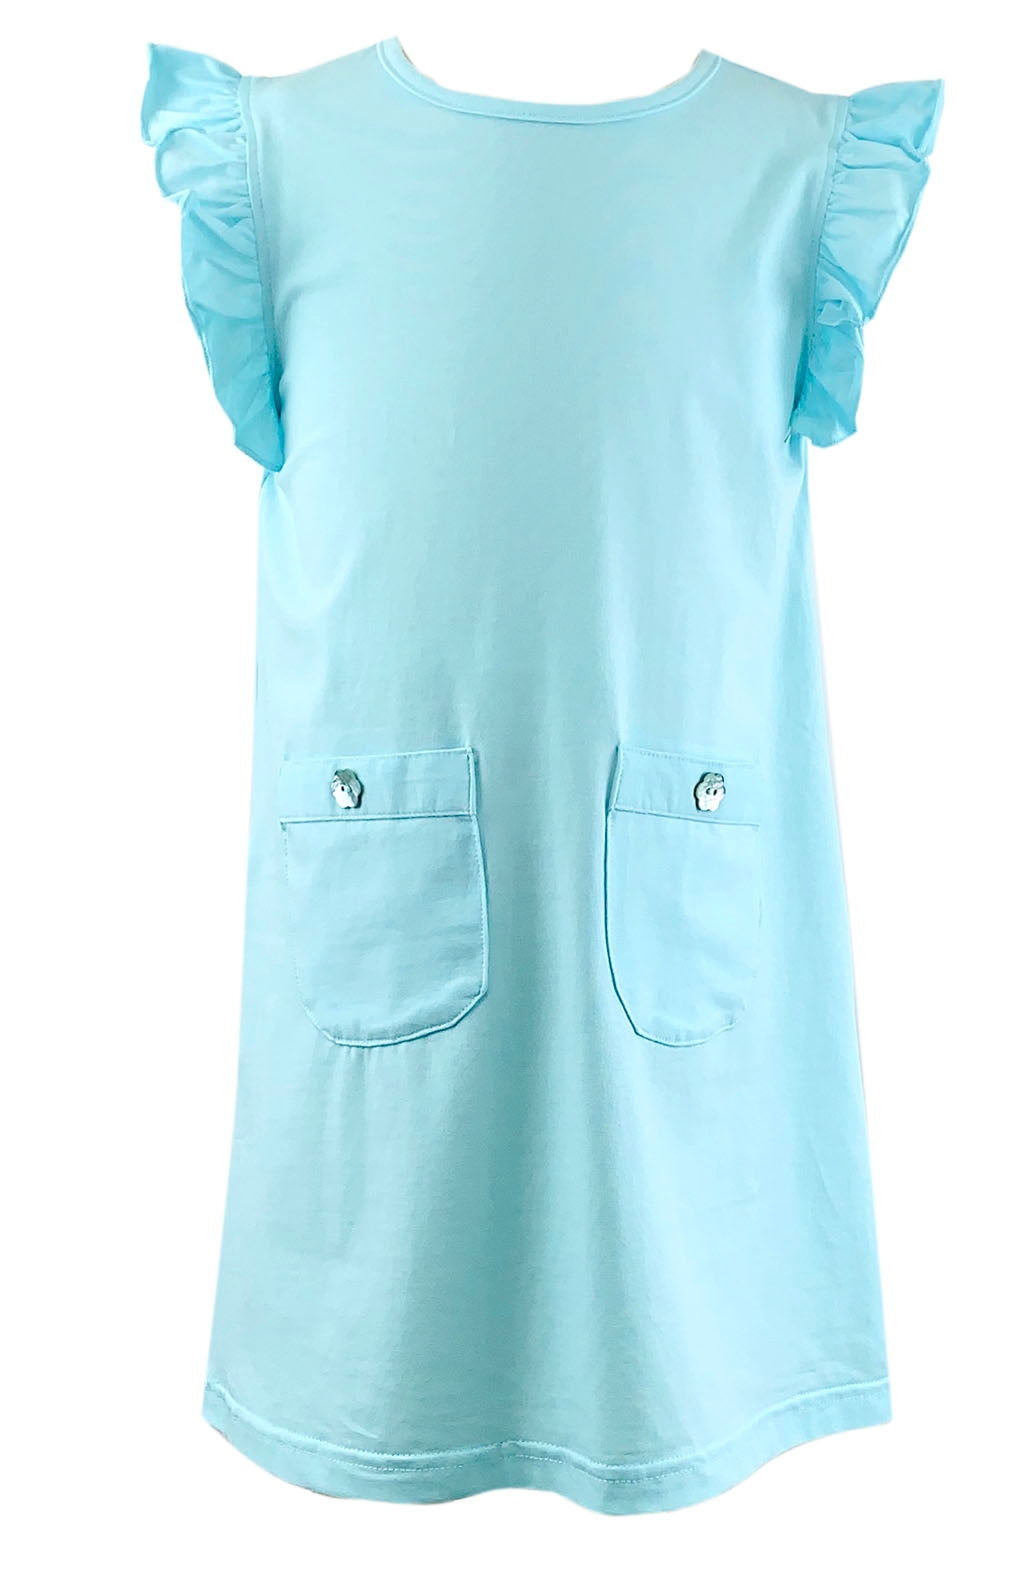 Just Blanks- Aqua A-line Dress